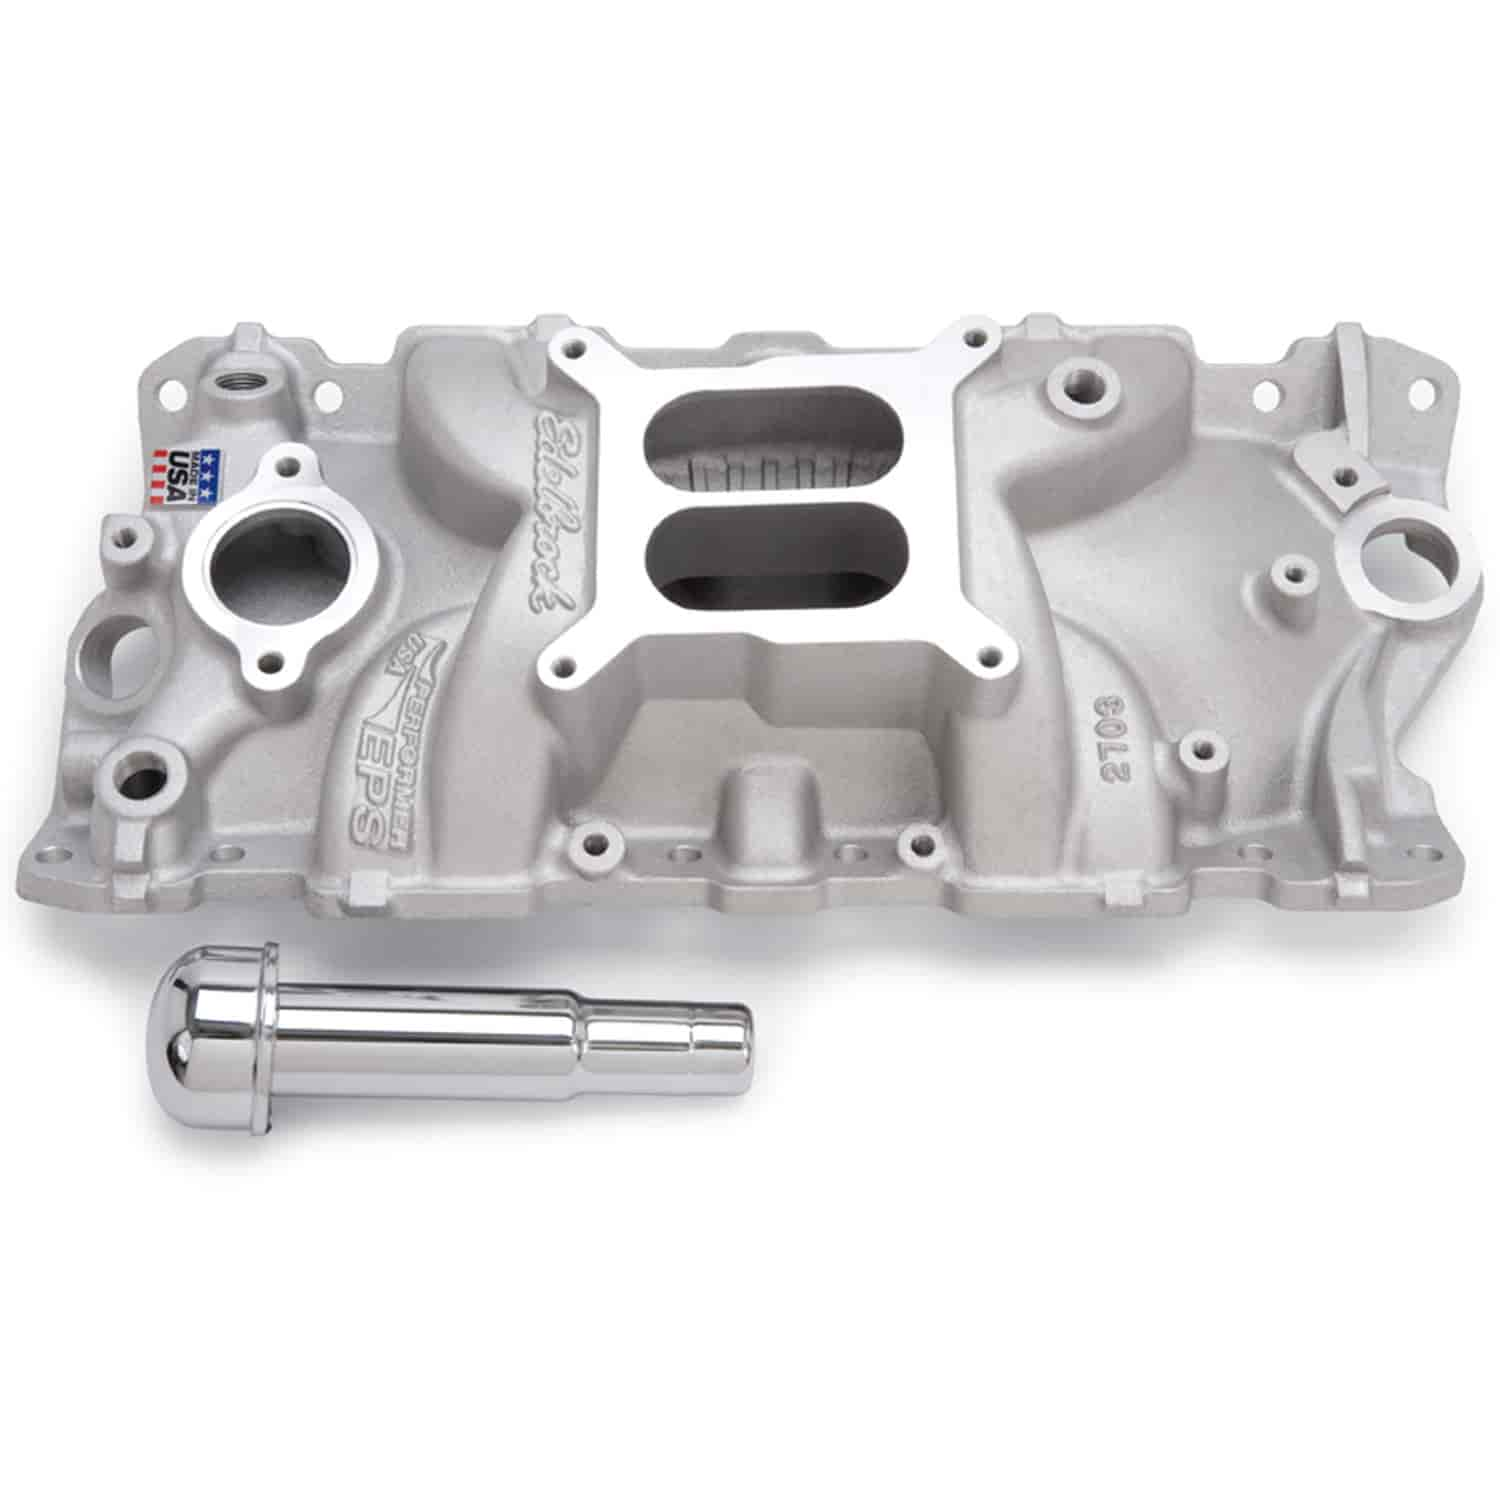 Edelbrock 2703 - Edelbrock Performer EPS Intake Manifolds for Chevrolet